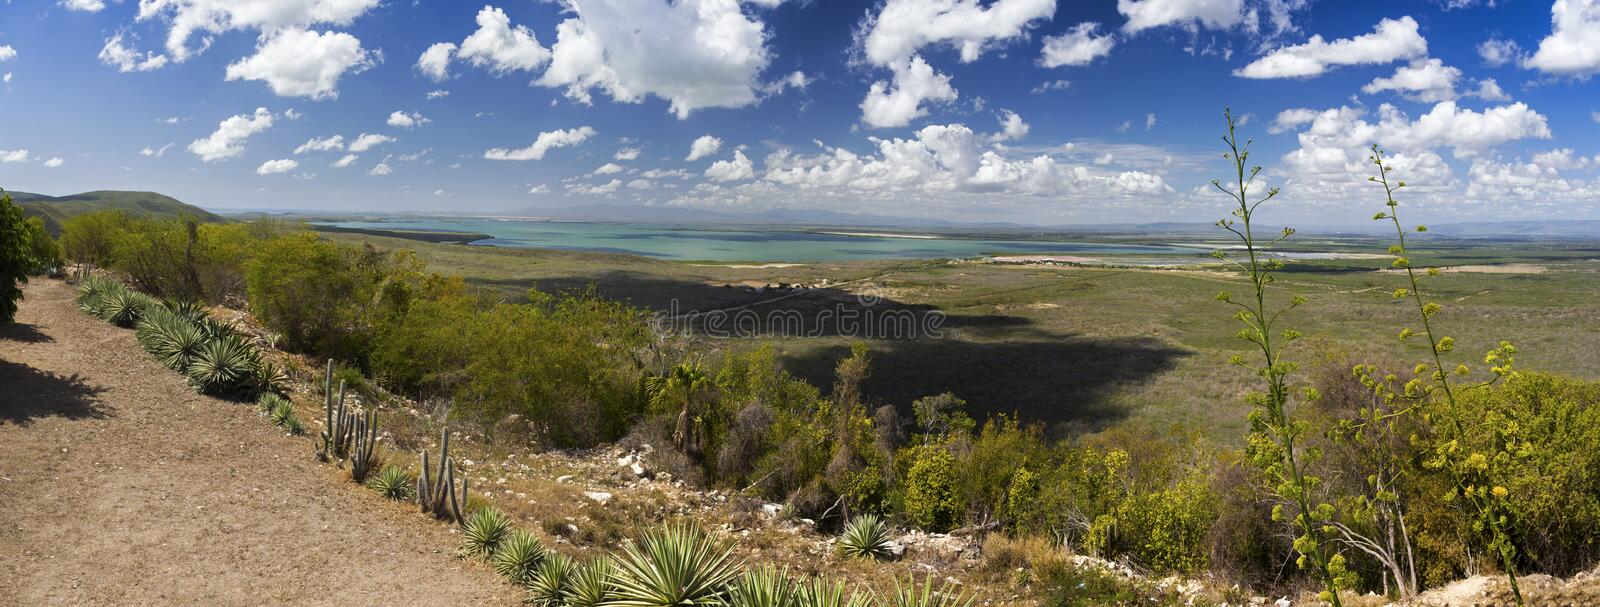 Guantanamo Bay Cuba Wide Panoramic Landscape Distant US Military Base Horizon royalty free stock images